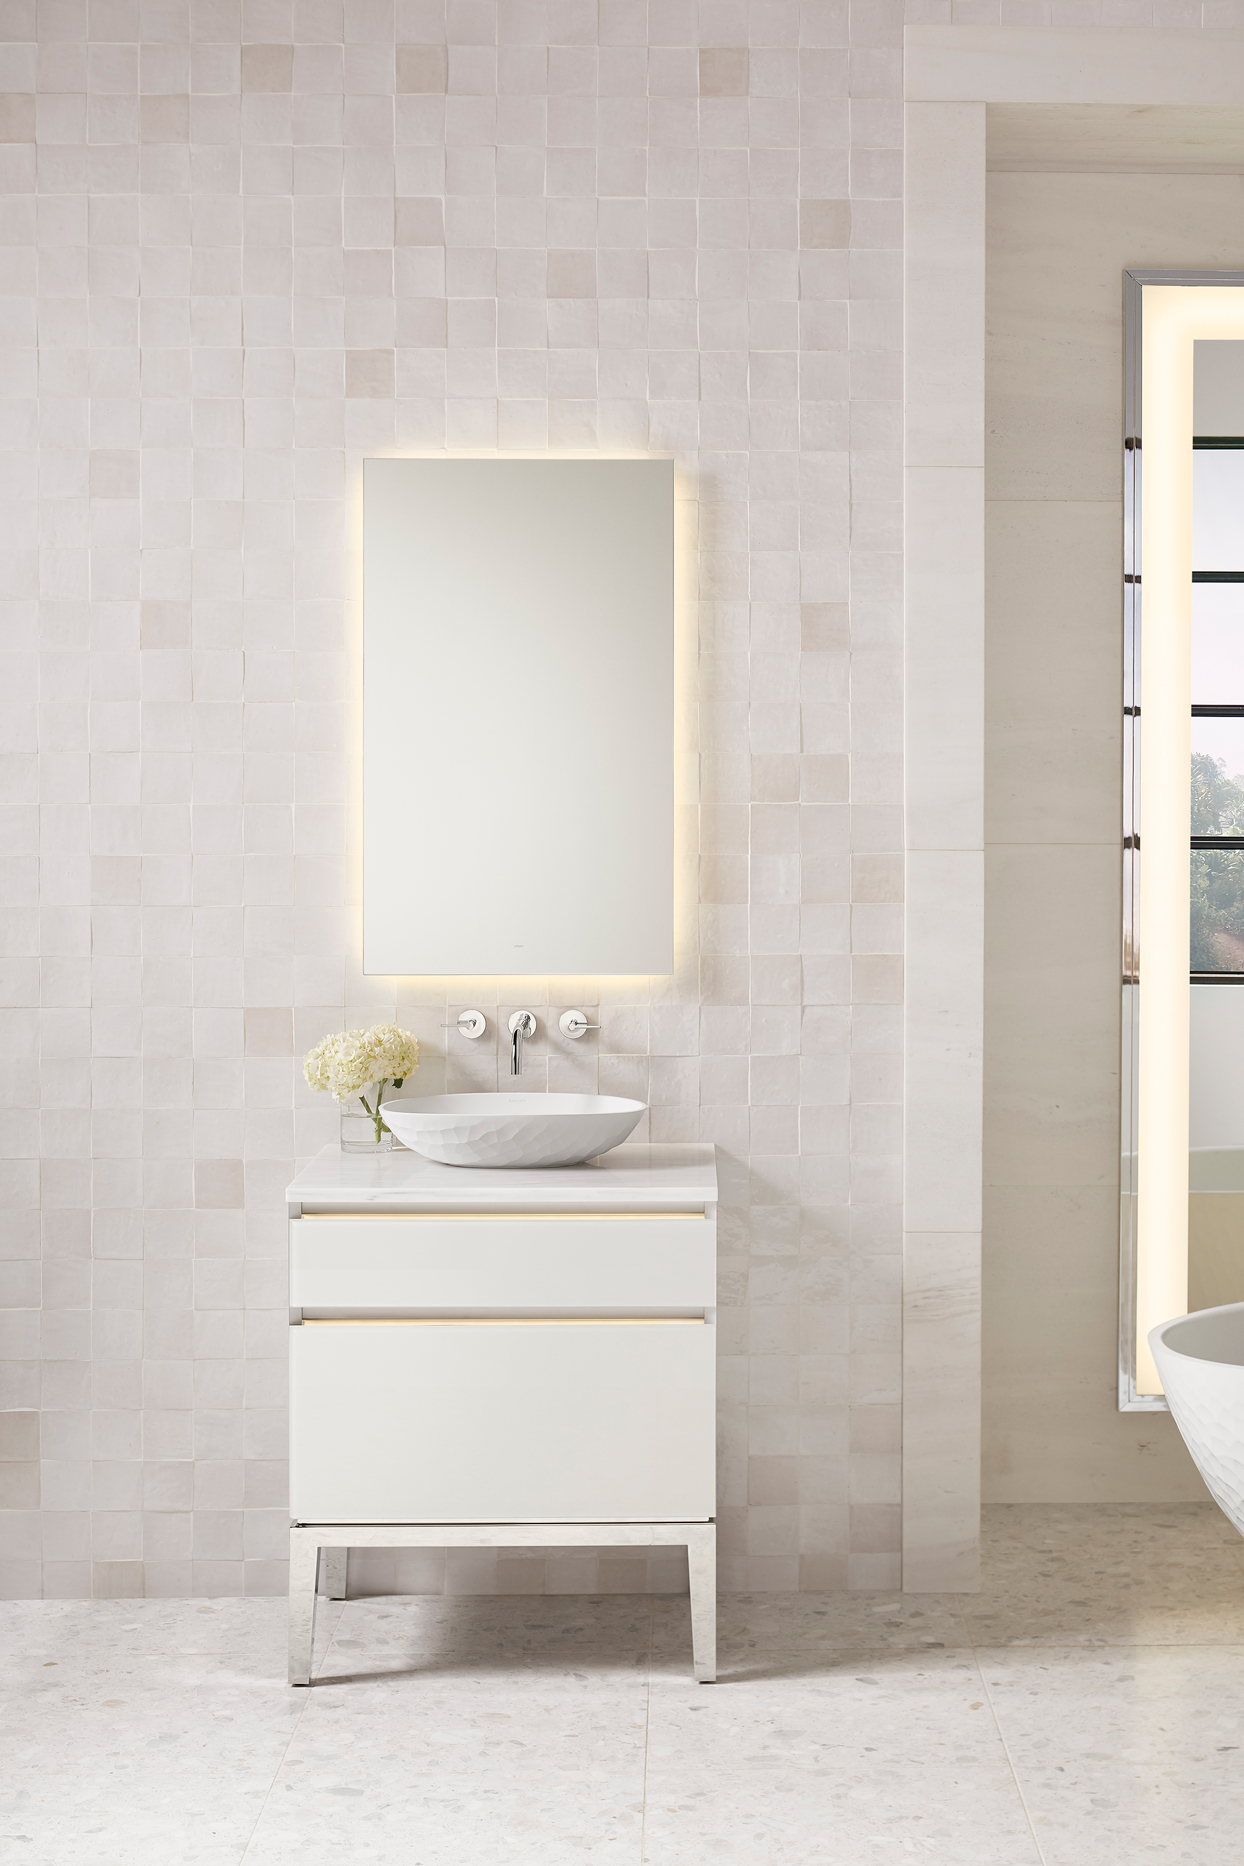 white tiled bathroom with backlit mirror